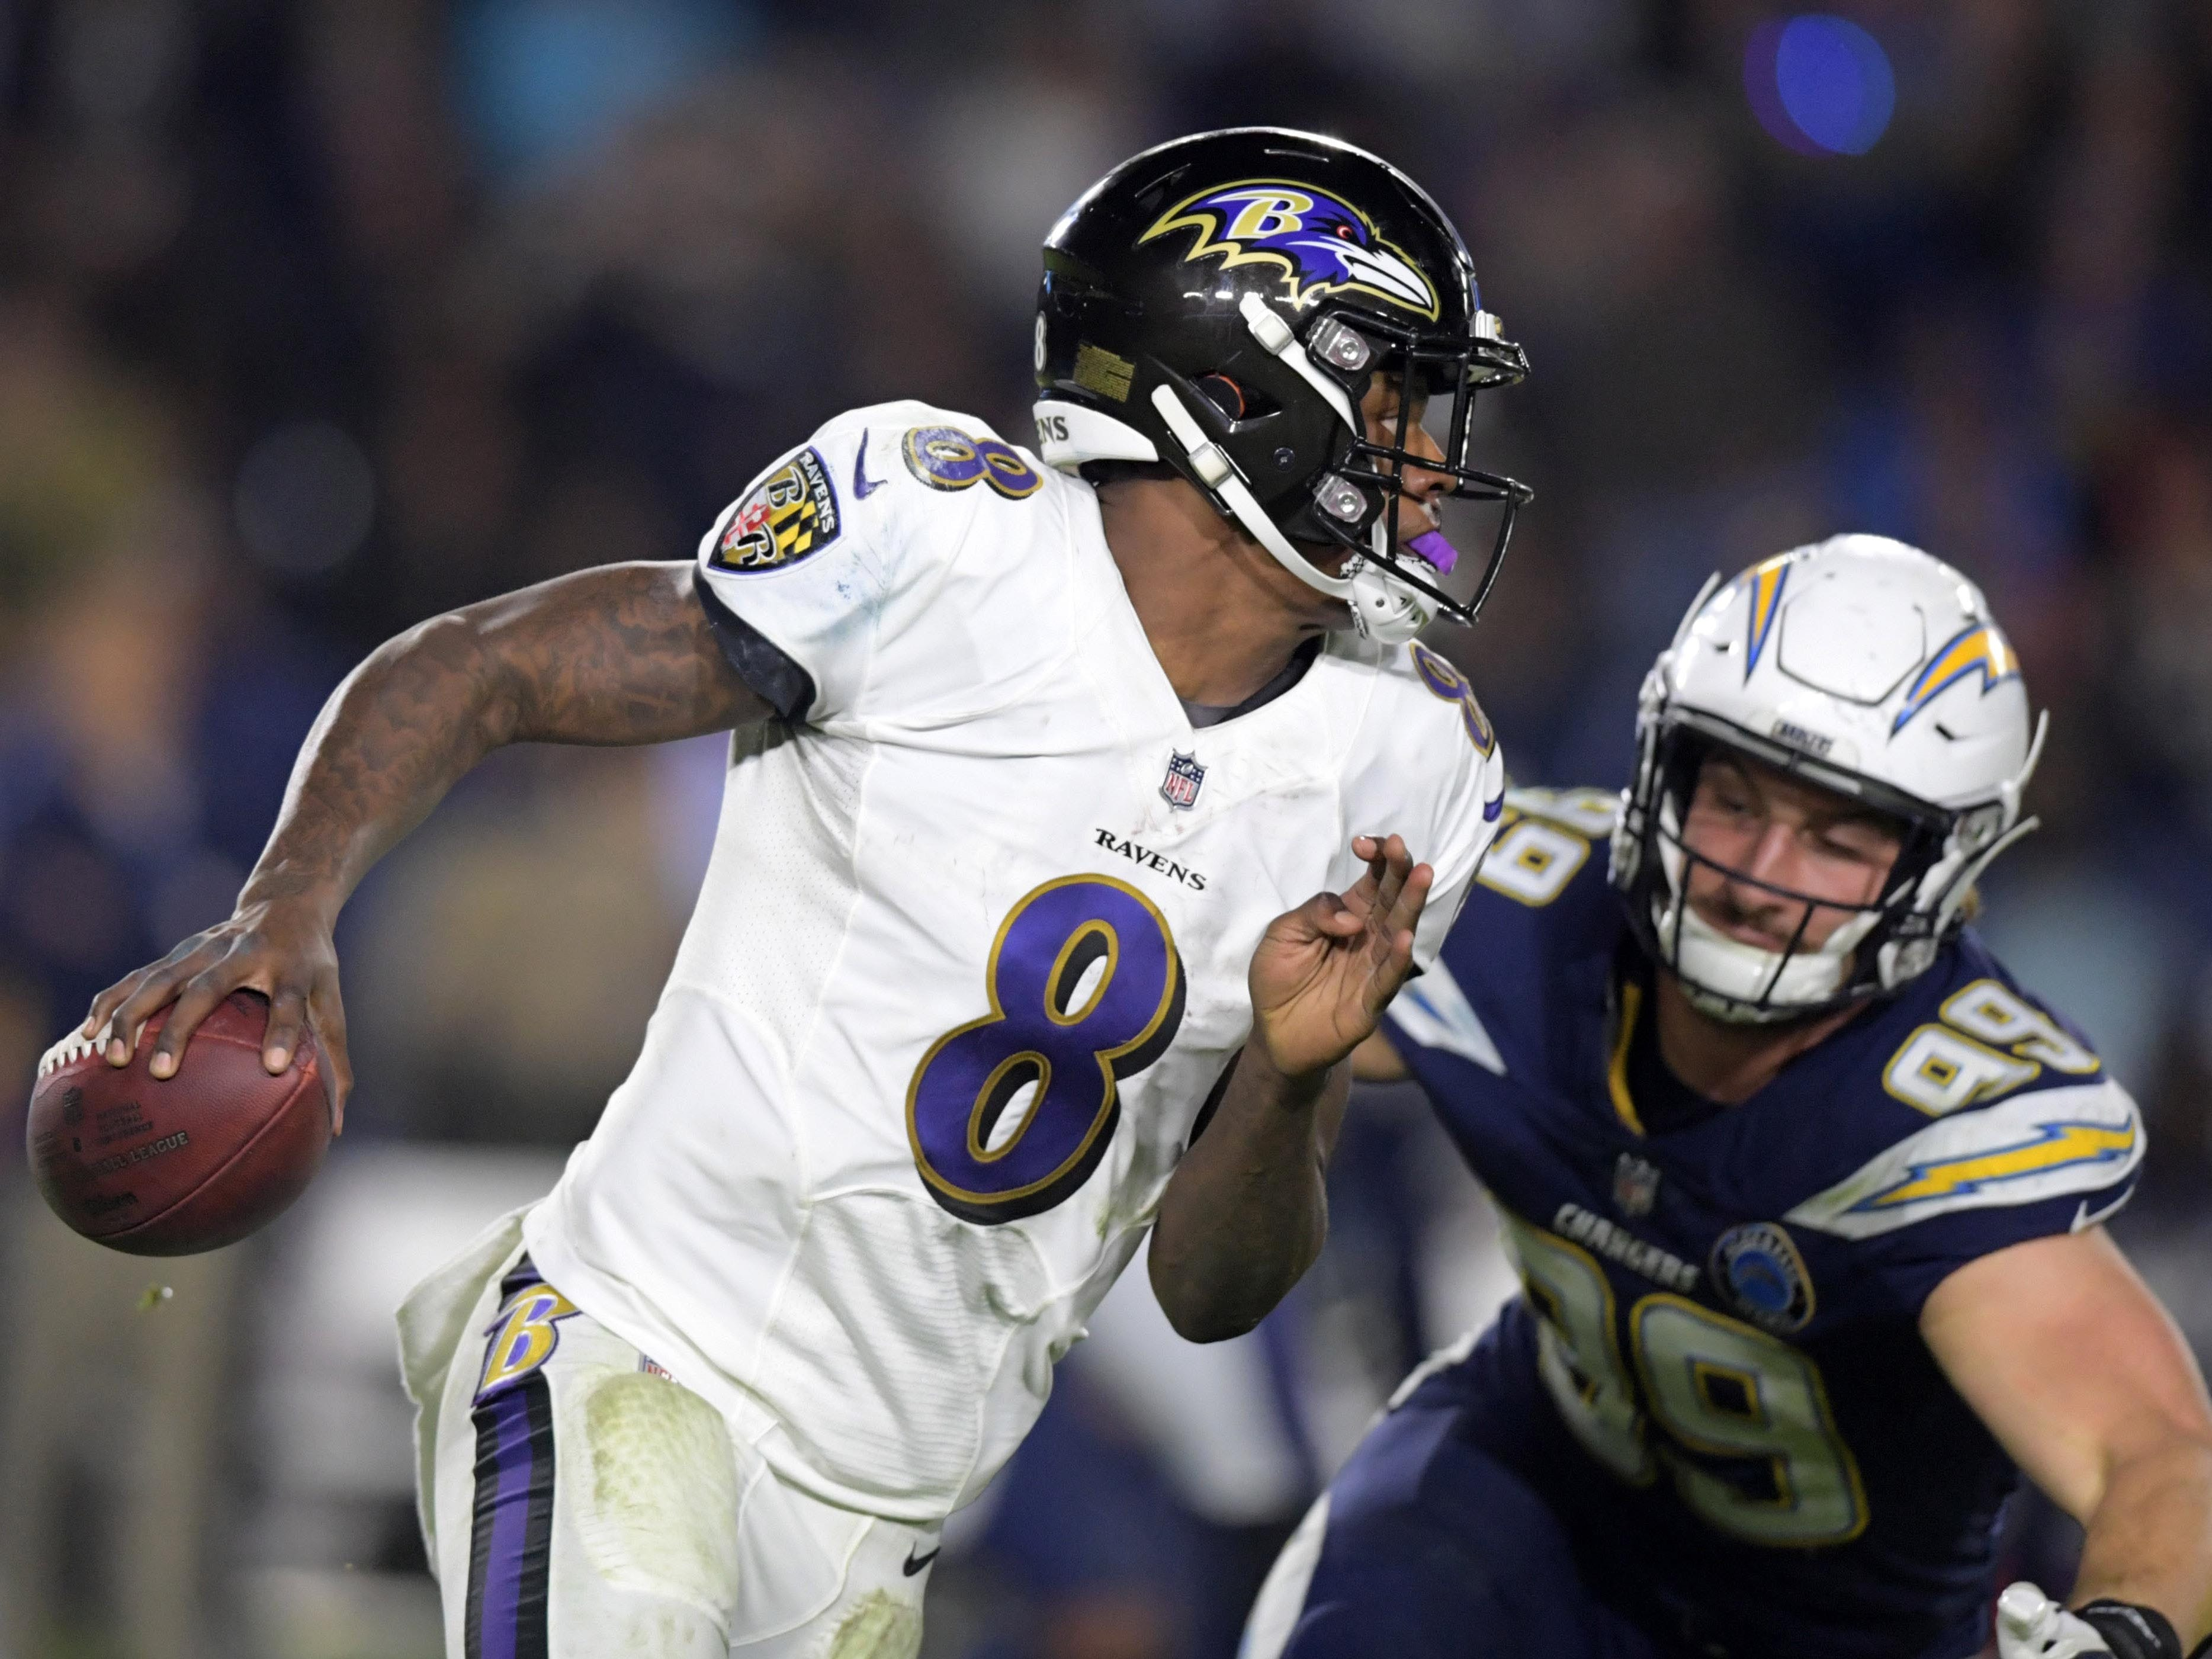 6. Ravens (10): Lamar Jackson's only loss came to Kansas City, the rare team that can put Baltimore in hole it can't climb out of. How else to beat Ravens?